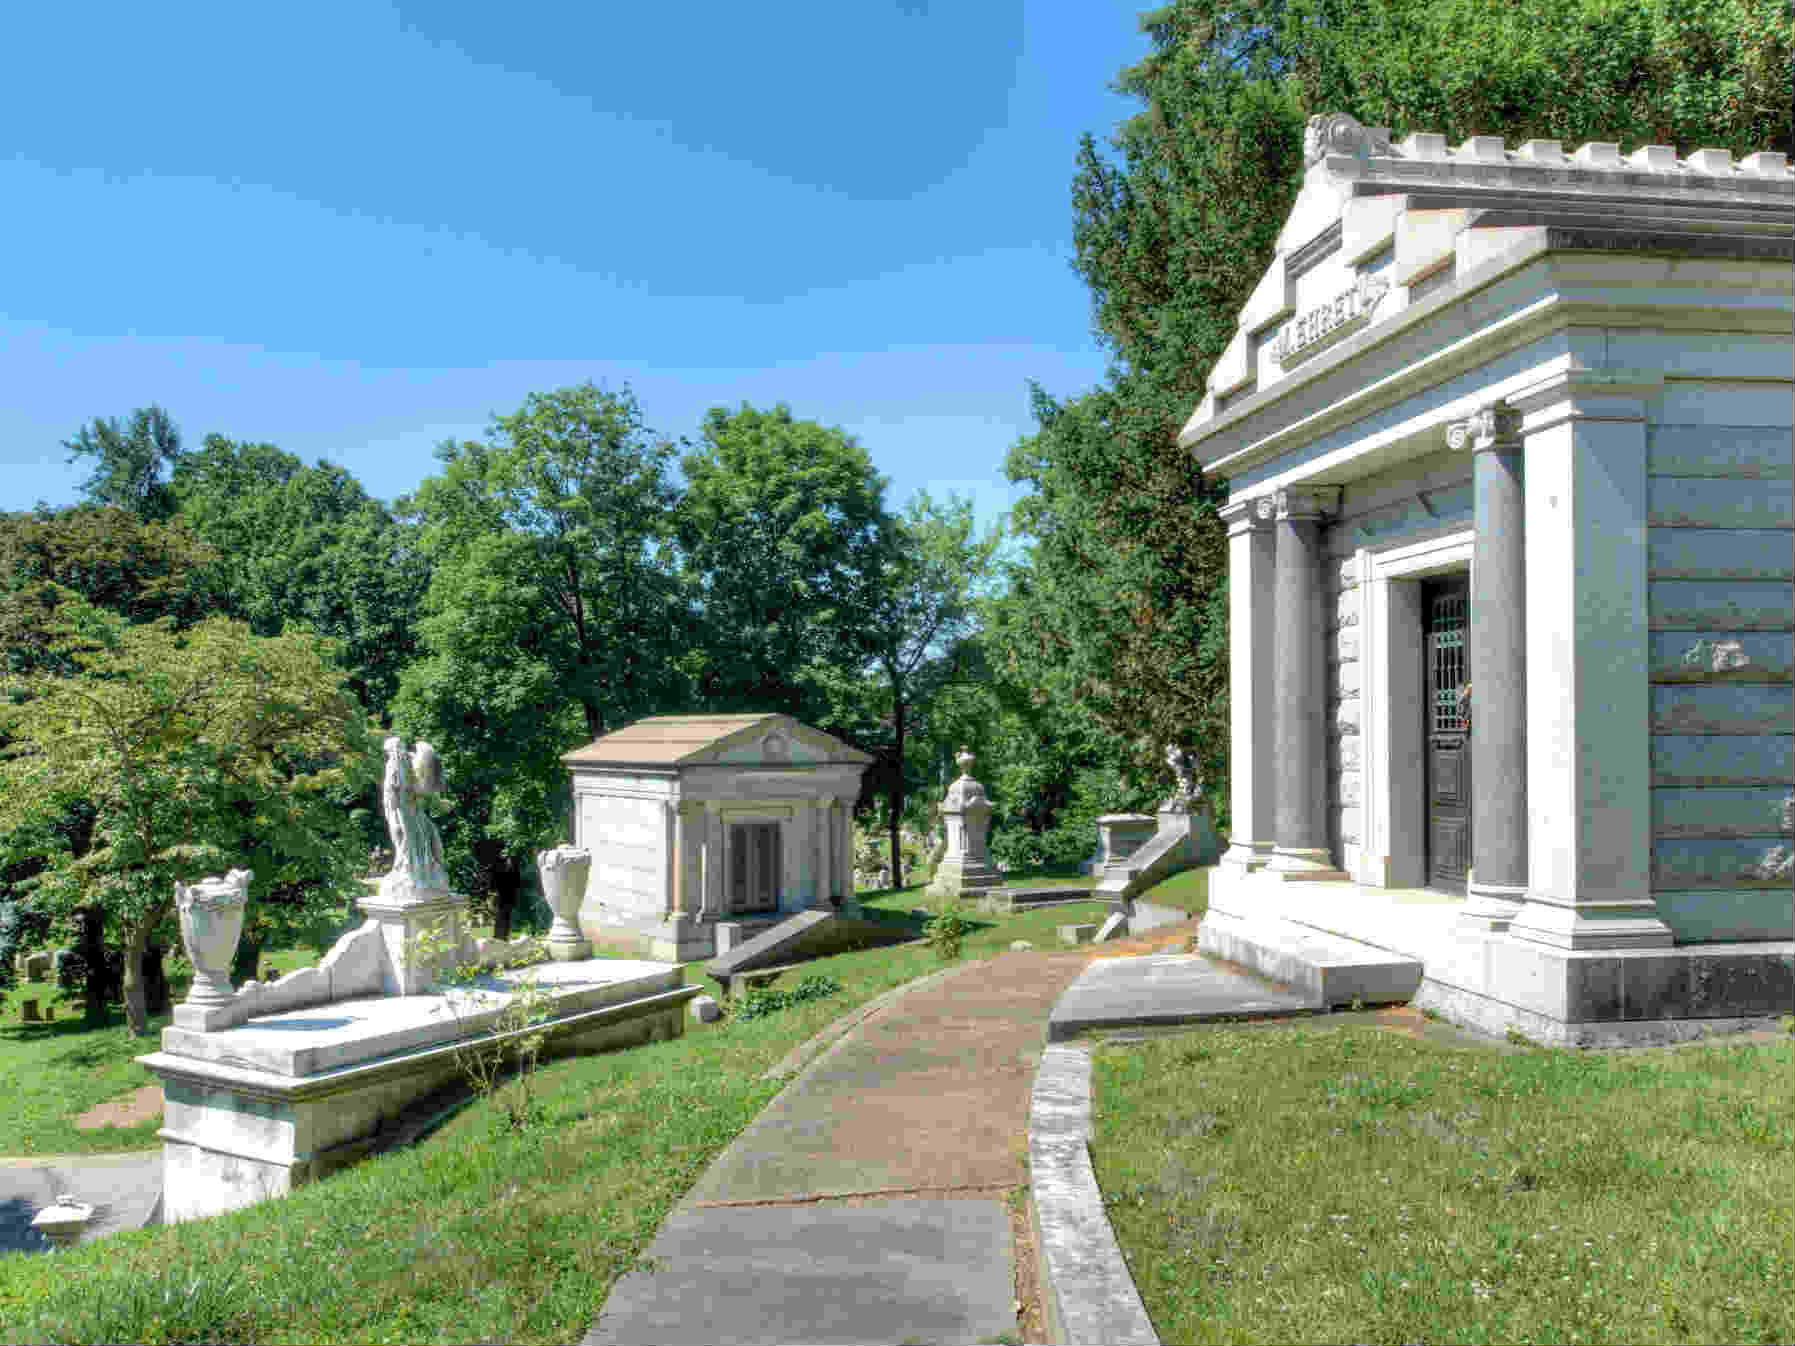 Staues and stone mausoleums at Laurel Hill Cemetery